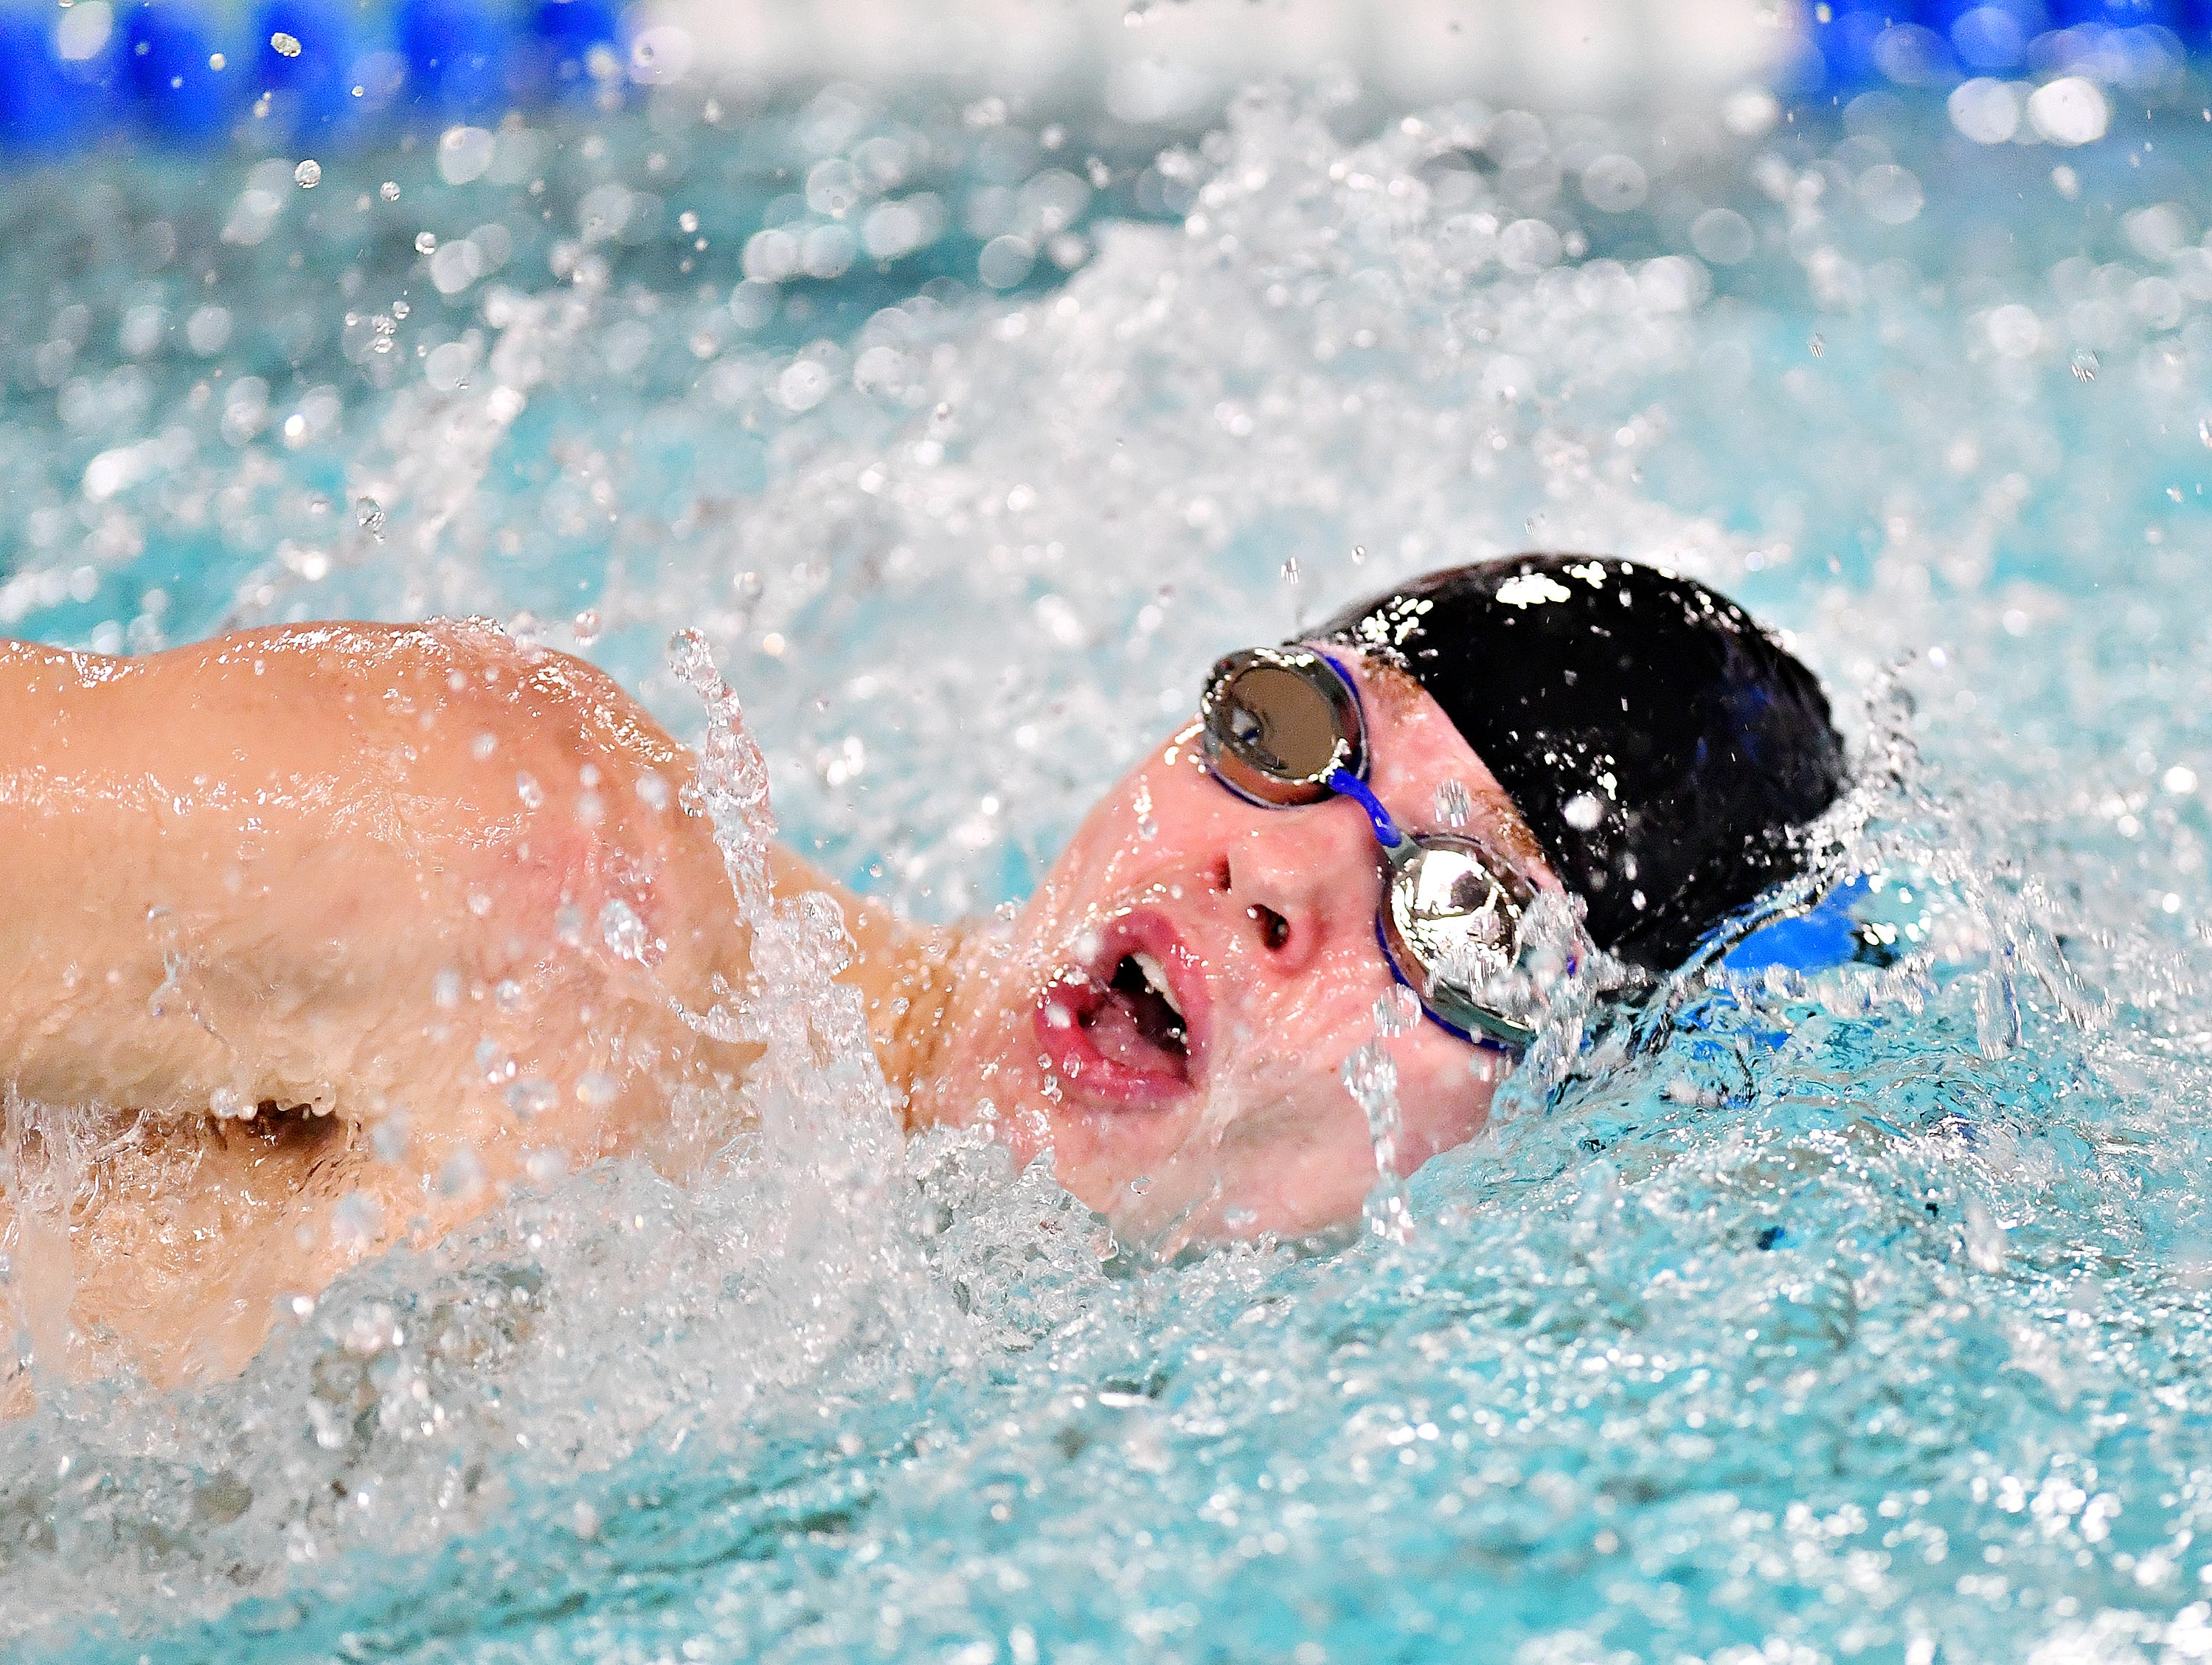 Dallastown's William Cornish competes in the 500 Yard Freestyle event during swimming action against Central York at Dallastown Area High School in York Township, Thursday, Jan. 10, 2019. Dawn J. Sagert photo